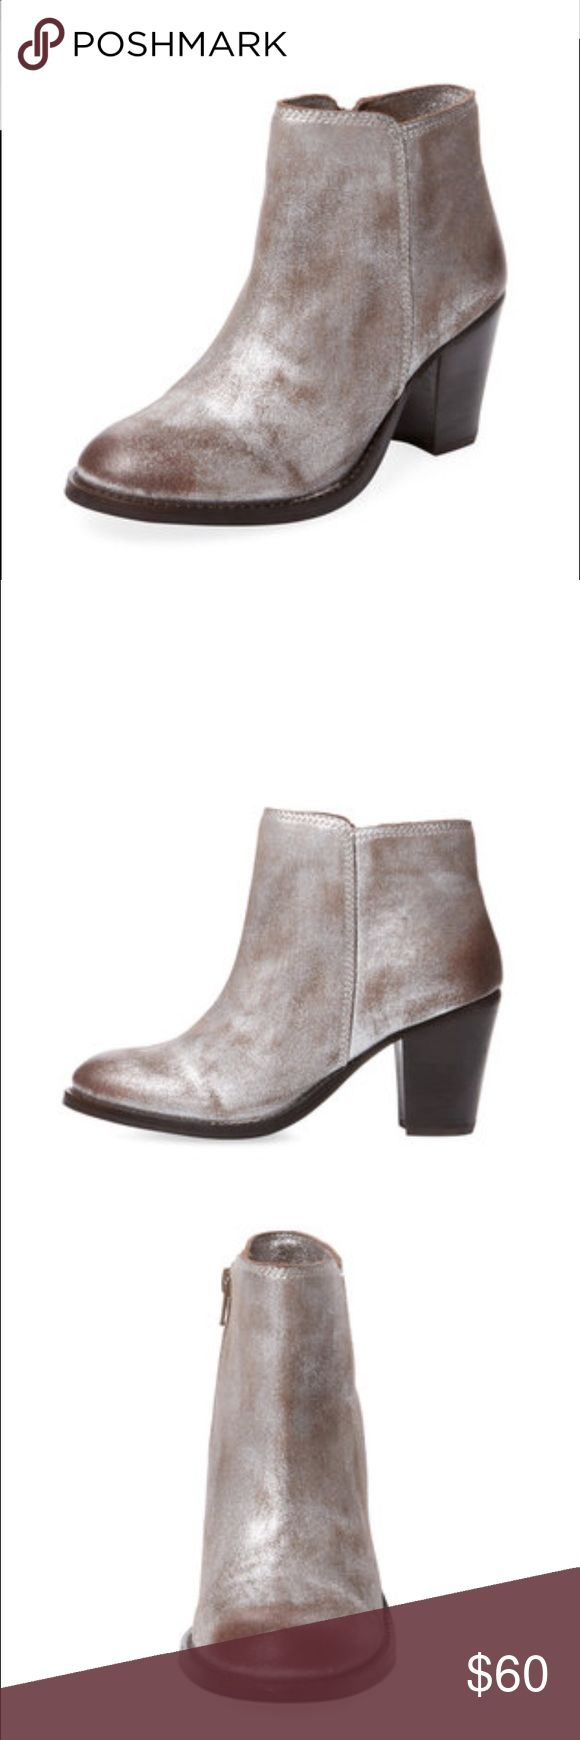 Seychelles Resolution Bootie Brand new in box! Gorgeous booties in pewter- never worn and all original packaging. Heel height 3 inches. Would be super cute with dark skinnies and a sweater! Seychelles Shoes Ankle Boots & Booties